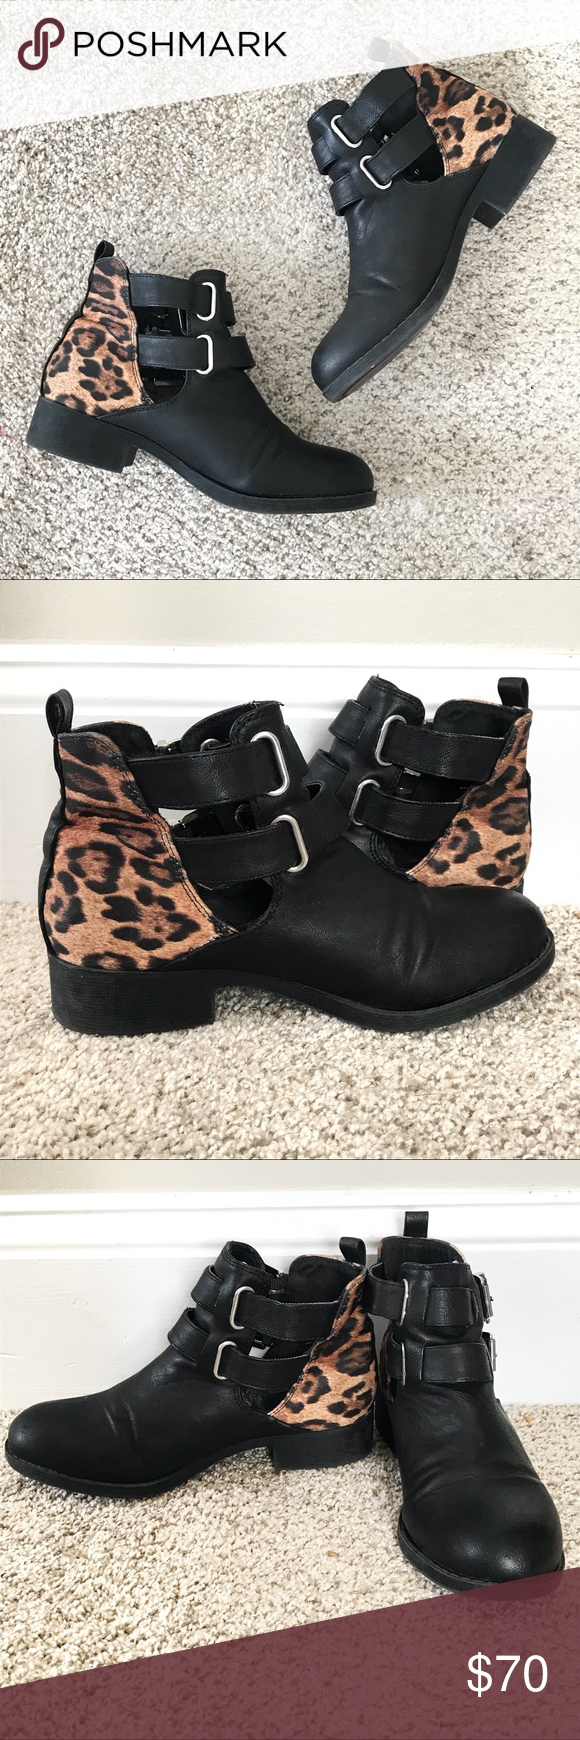 c616cc30ee6e Kendall & Kylie Black Ankle Boots Leopard Print Kendall + Kylie black moto  ankle booties with